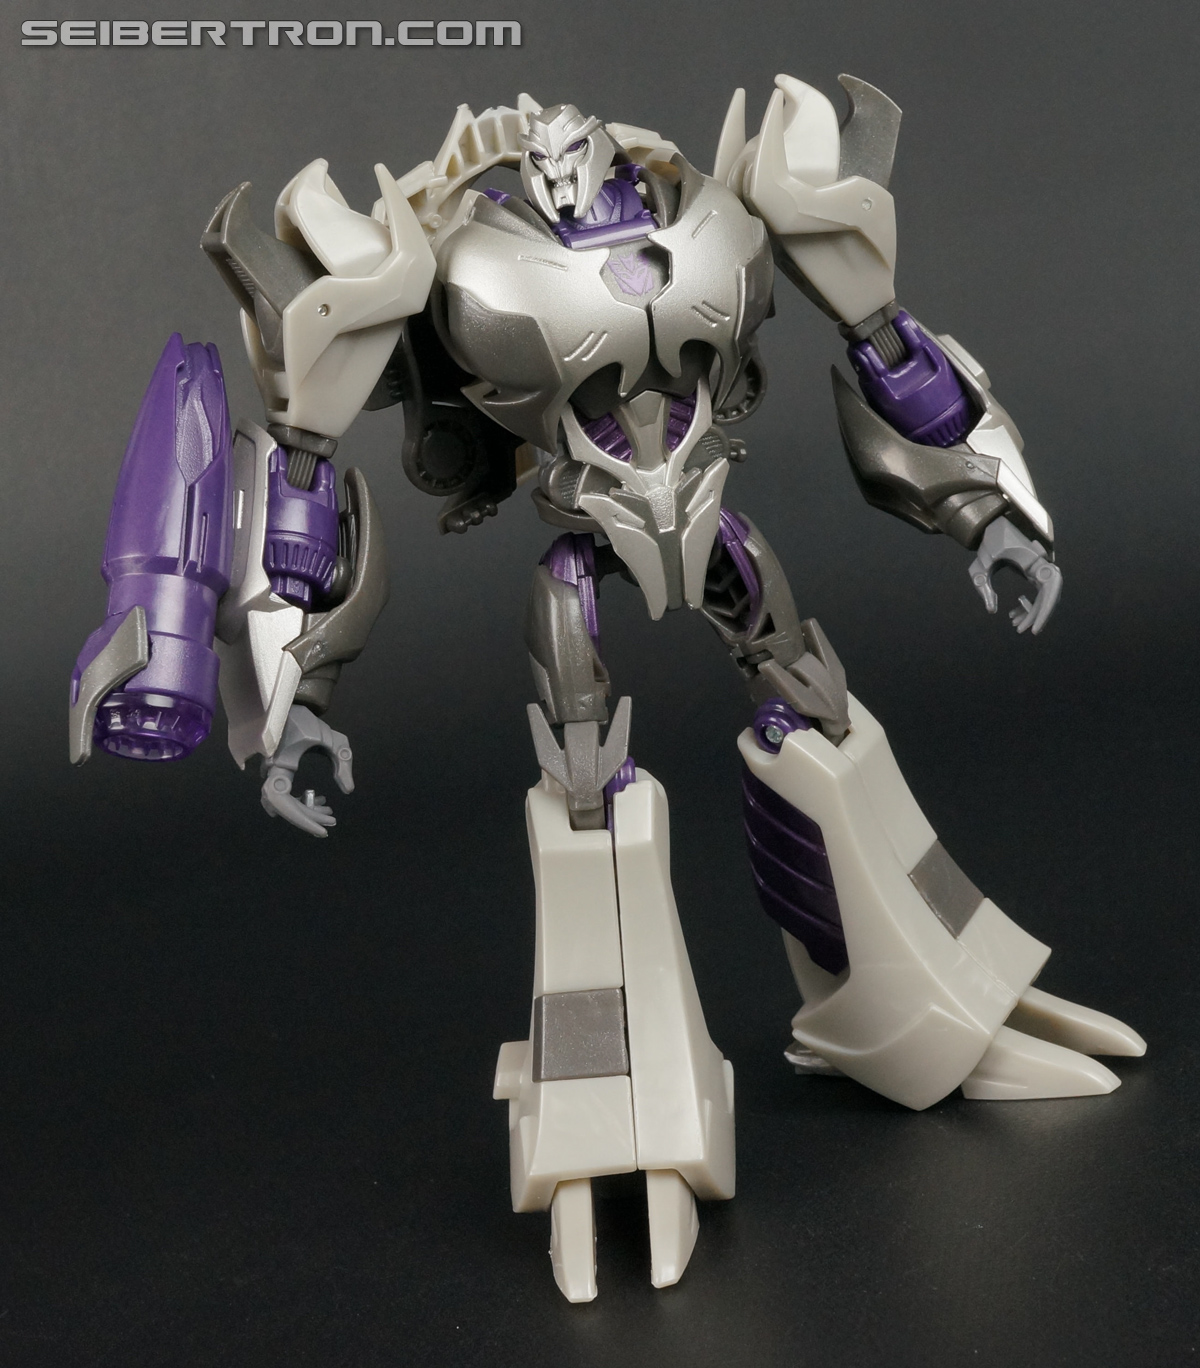 Transformers First Edition Megatron (Image #111 of 165)